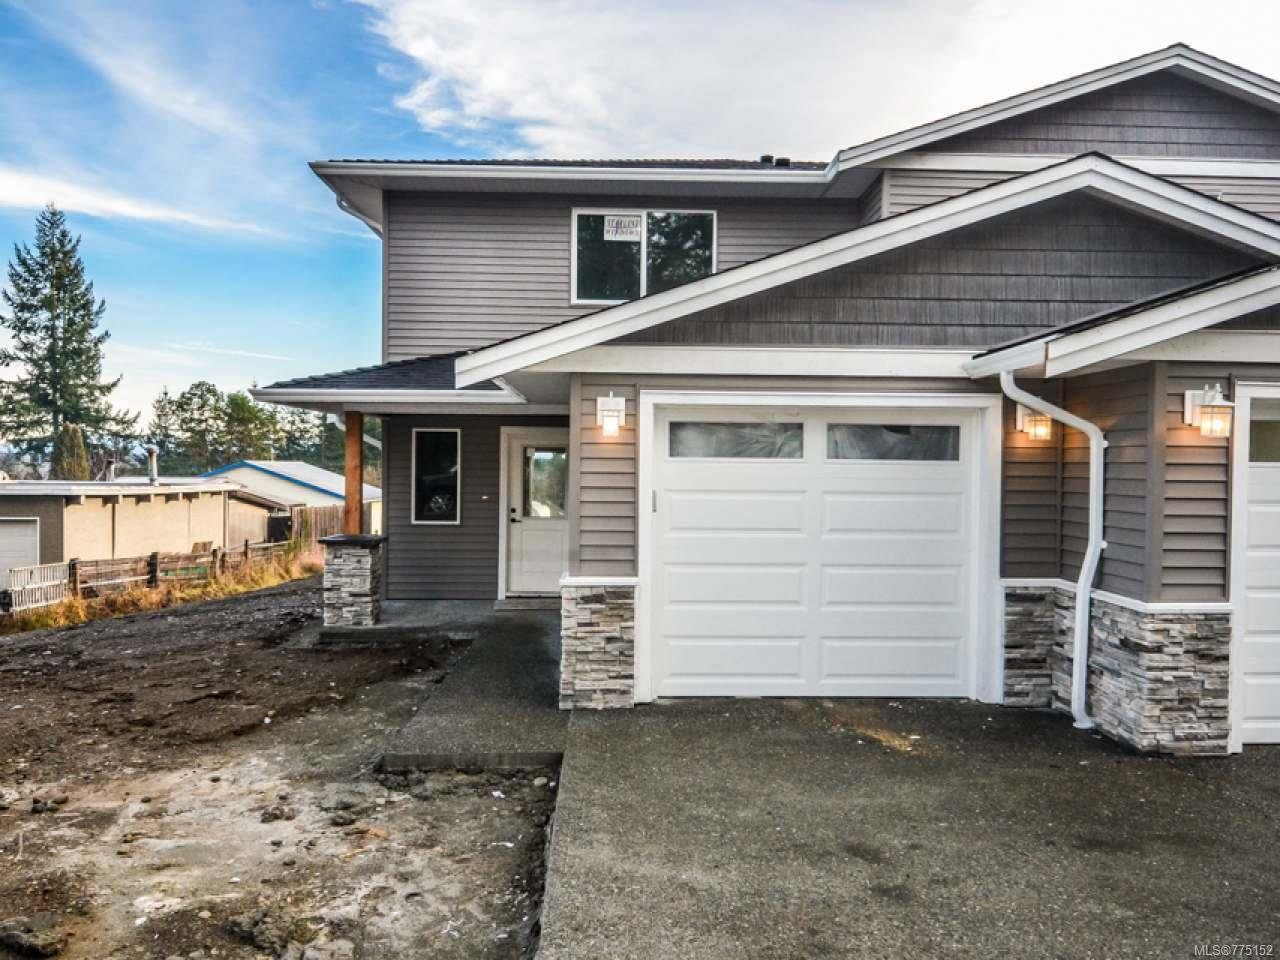 Main Photo: 1 595 Petersen Rd in CAMPBELL RIVER: CR Campbell River West Half Duplex for sale (Campbell River)  : MLS®# 775152